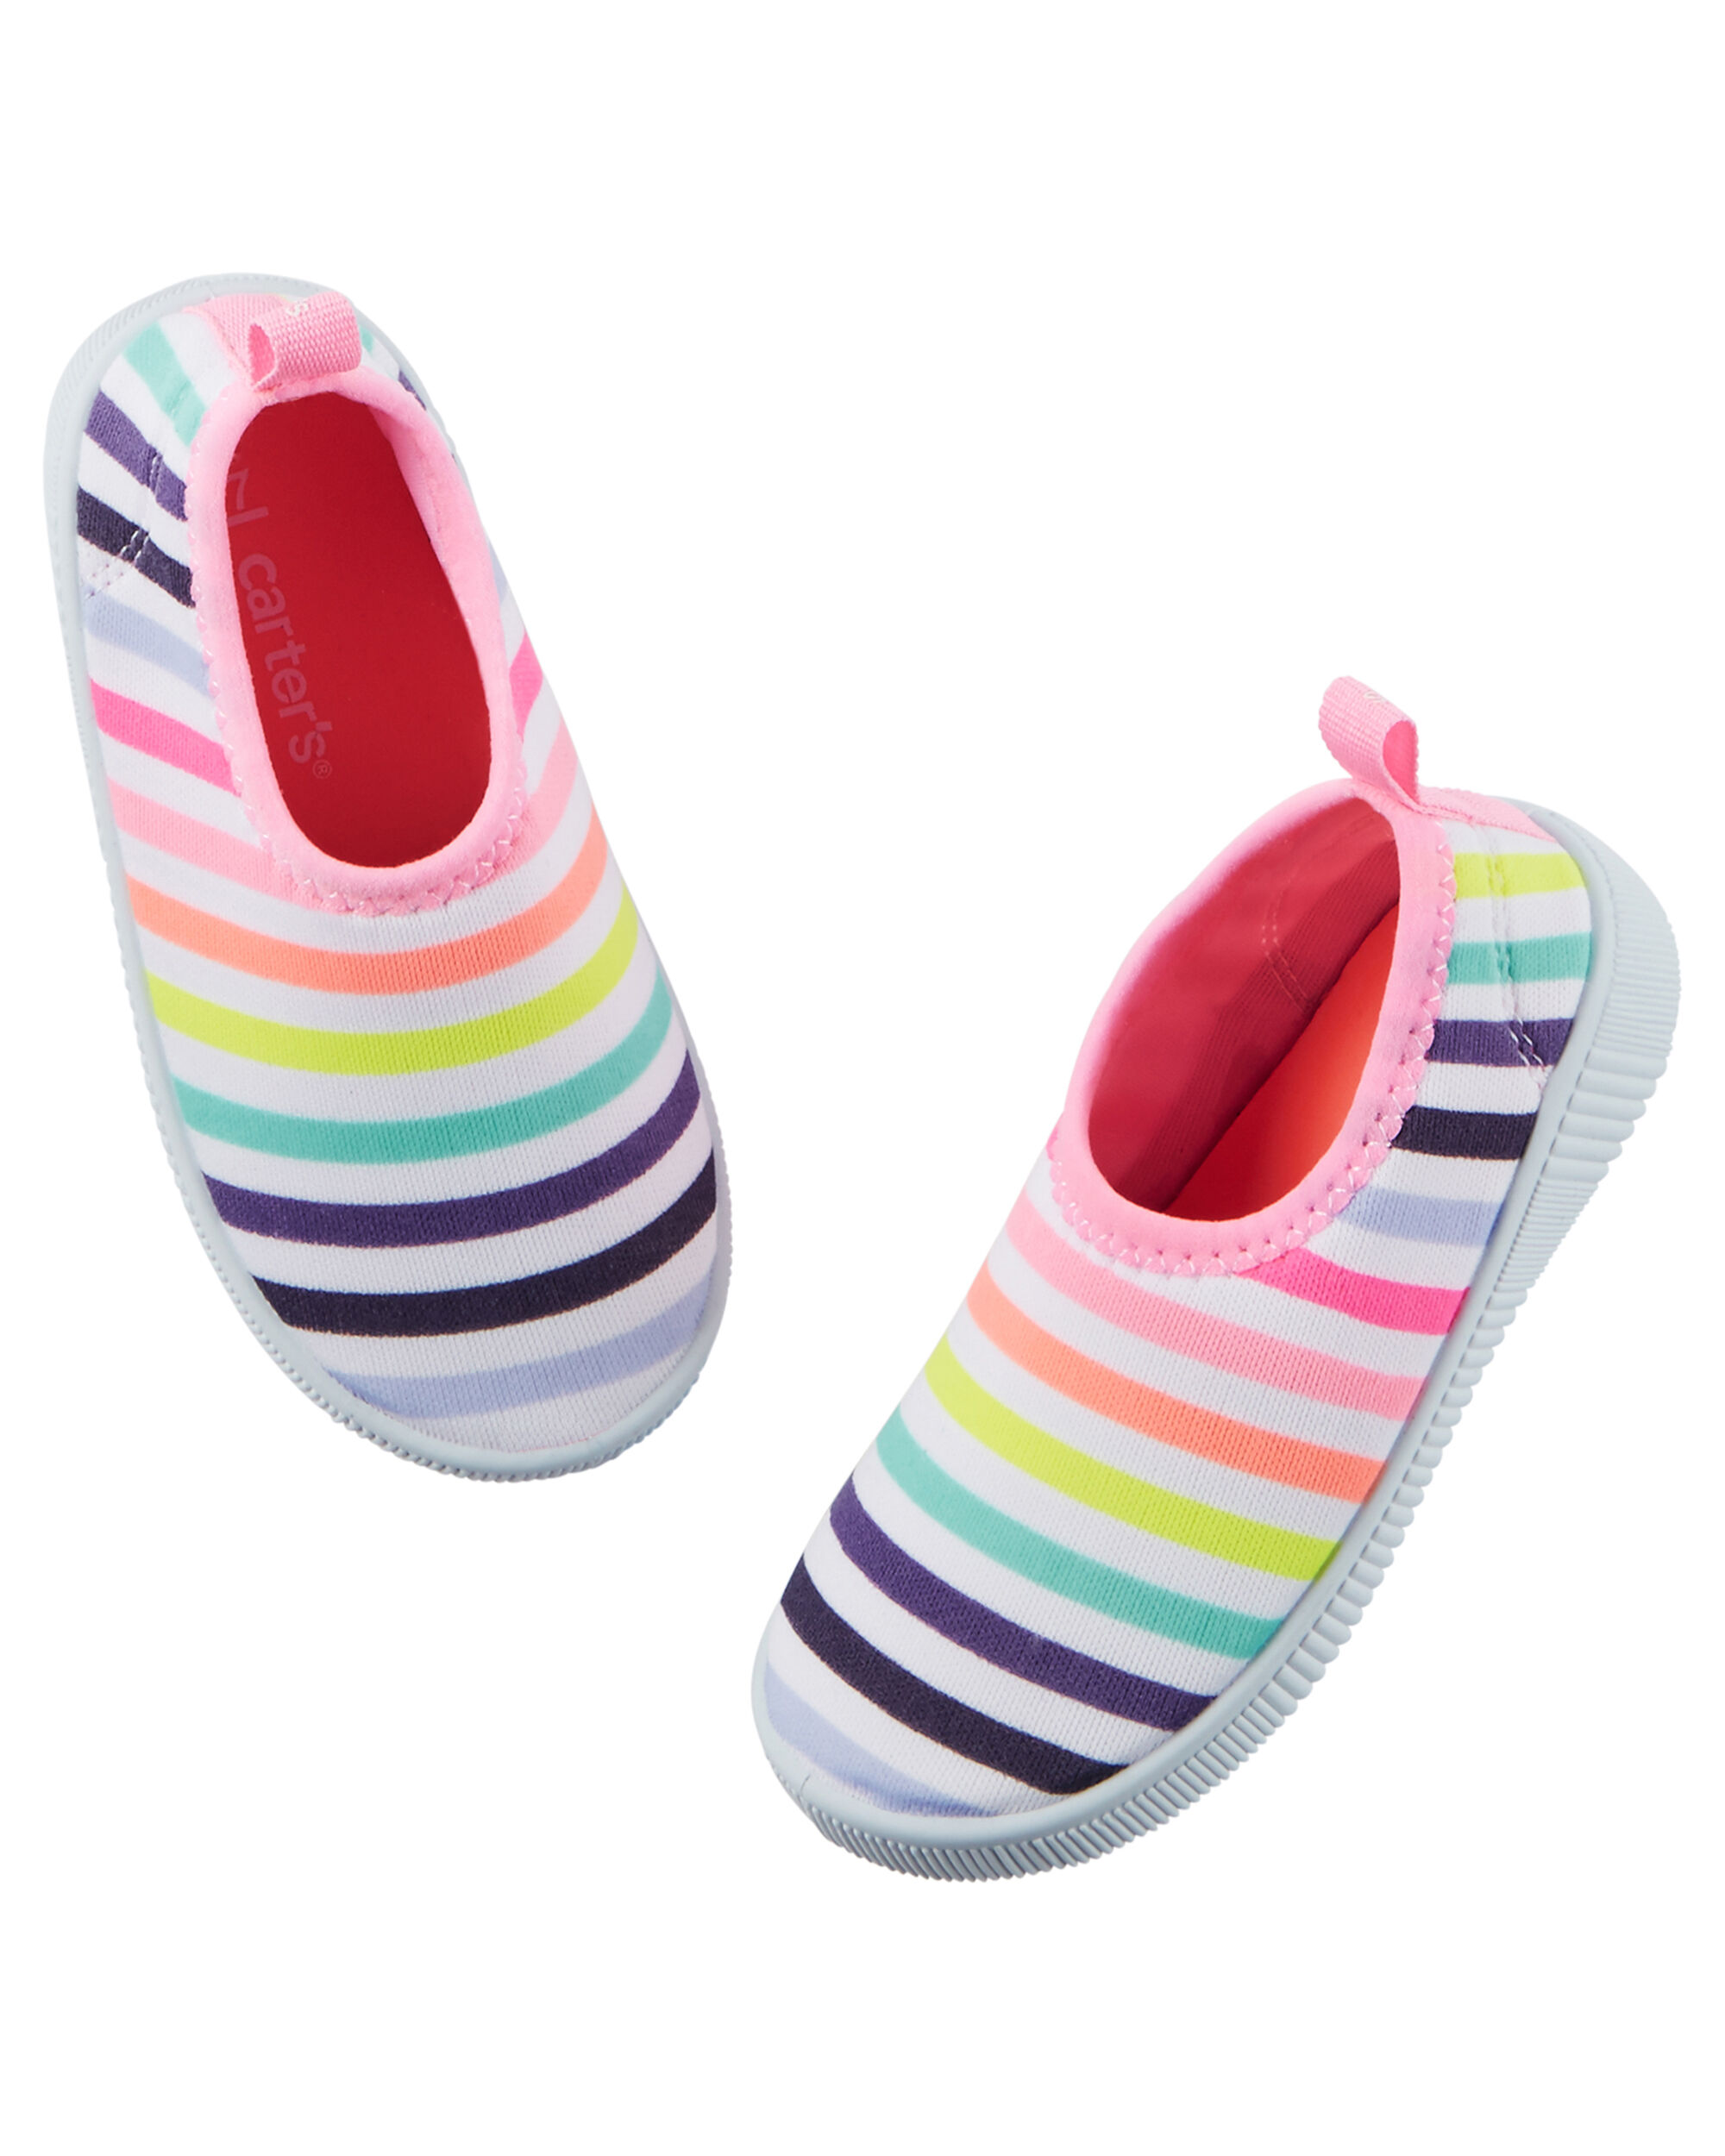 Carter's Slip-On Water Shoes   carters.com